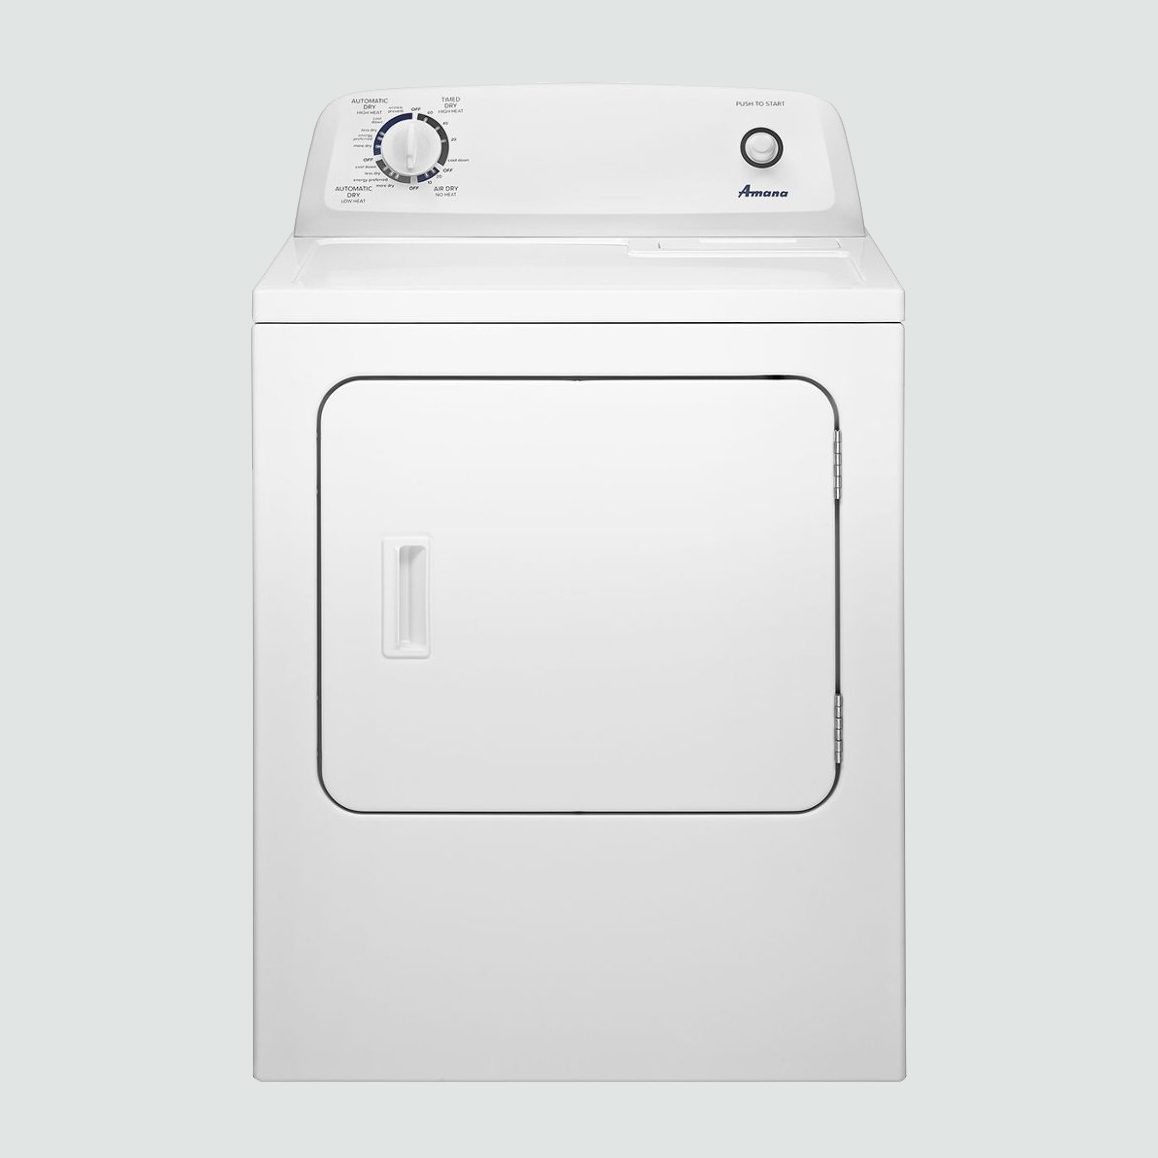 Take an extra 40% off open-box appliances at BestBuy.com